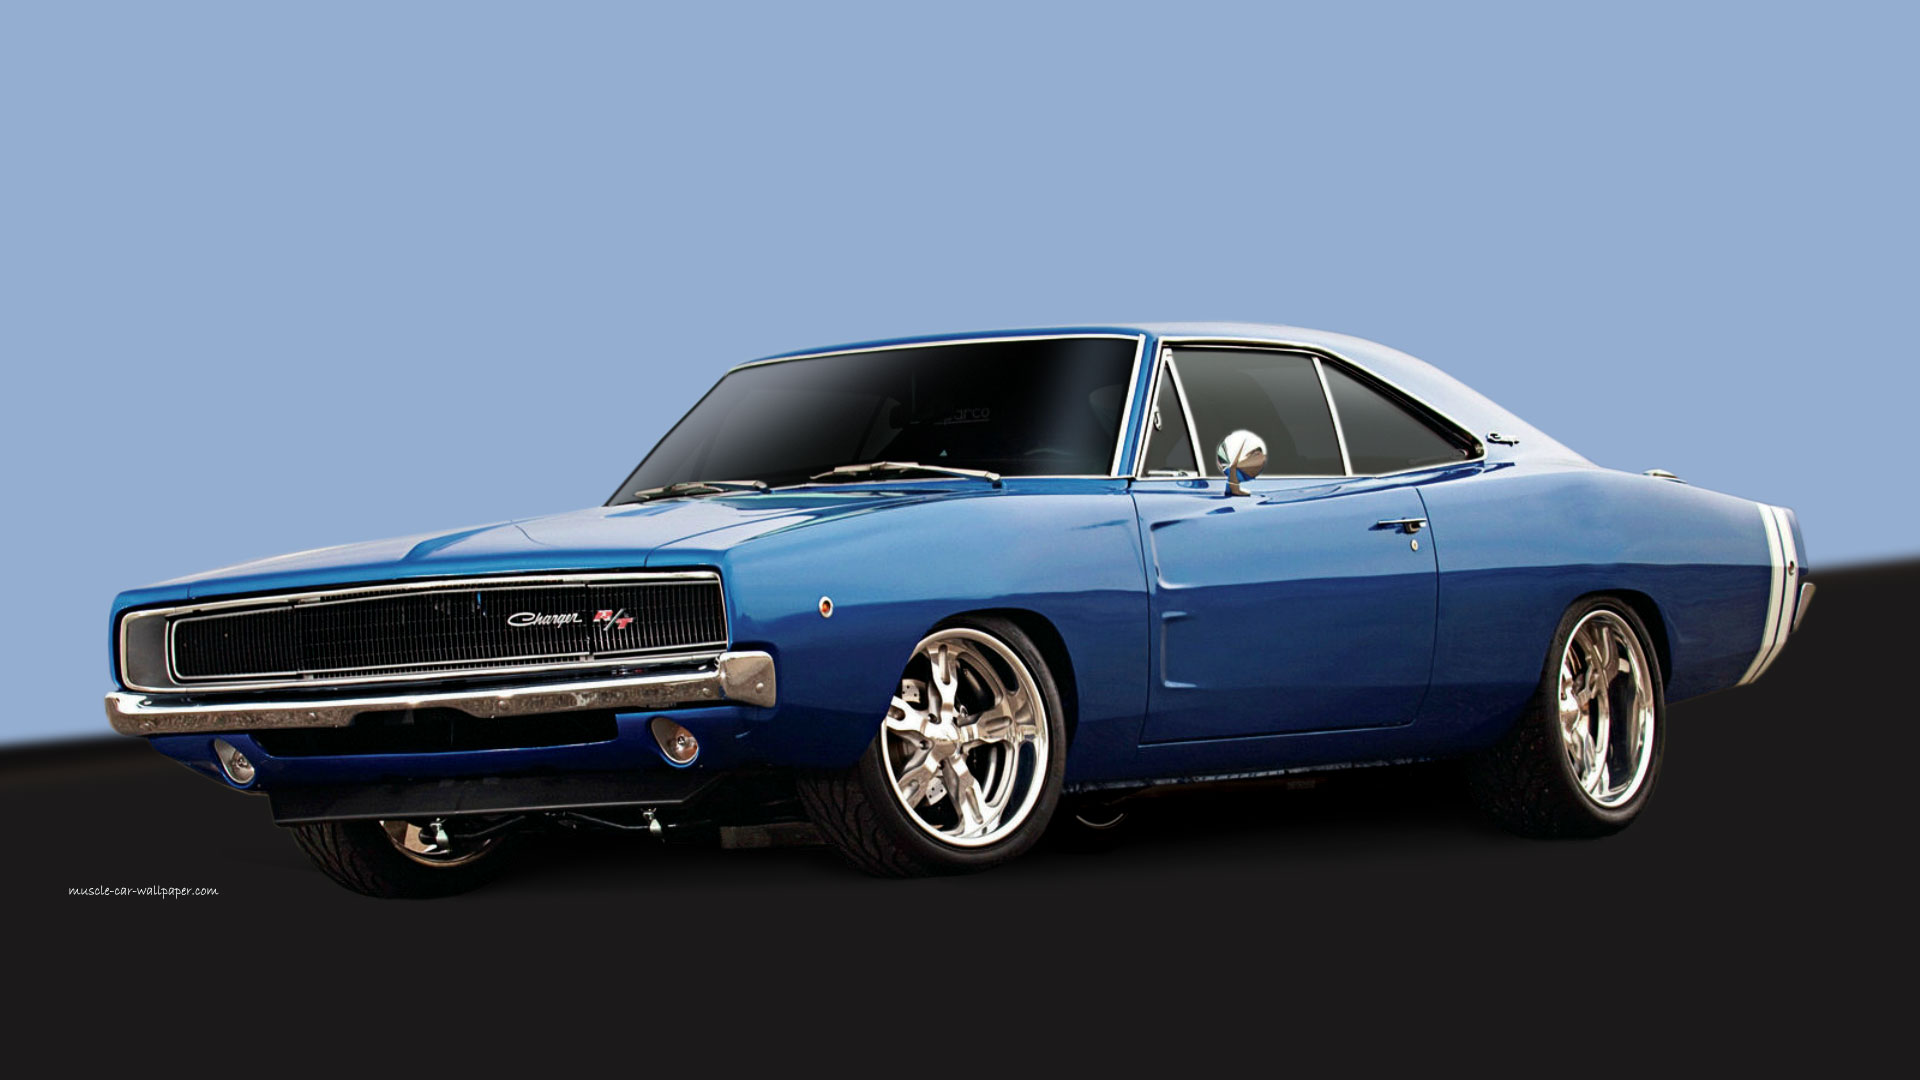 Amc muscle cars Ford muscle cars Mopar muscle cars GM muscle cars Home 1920x1080